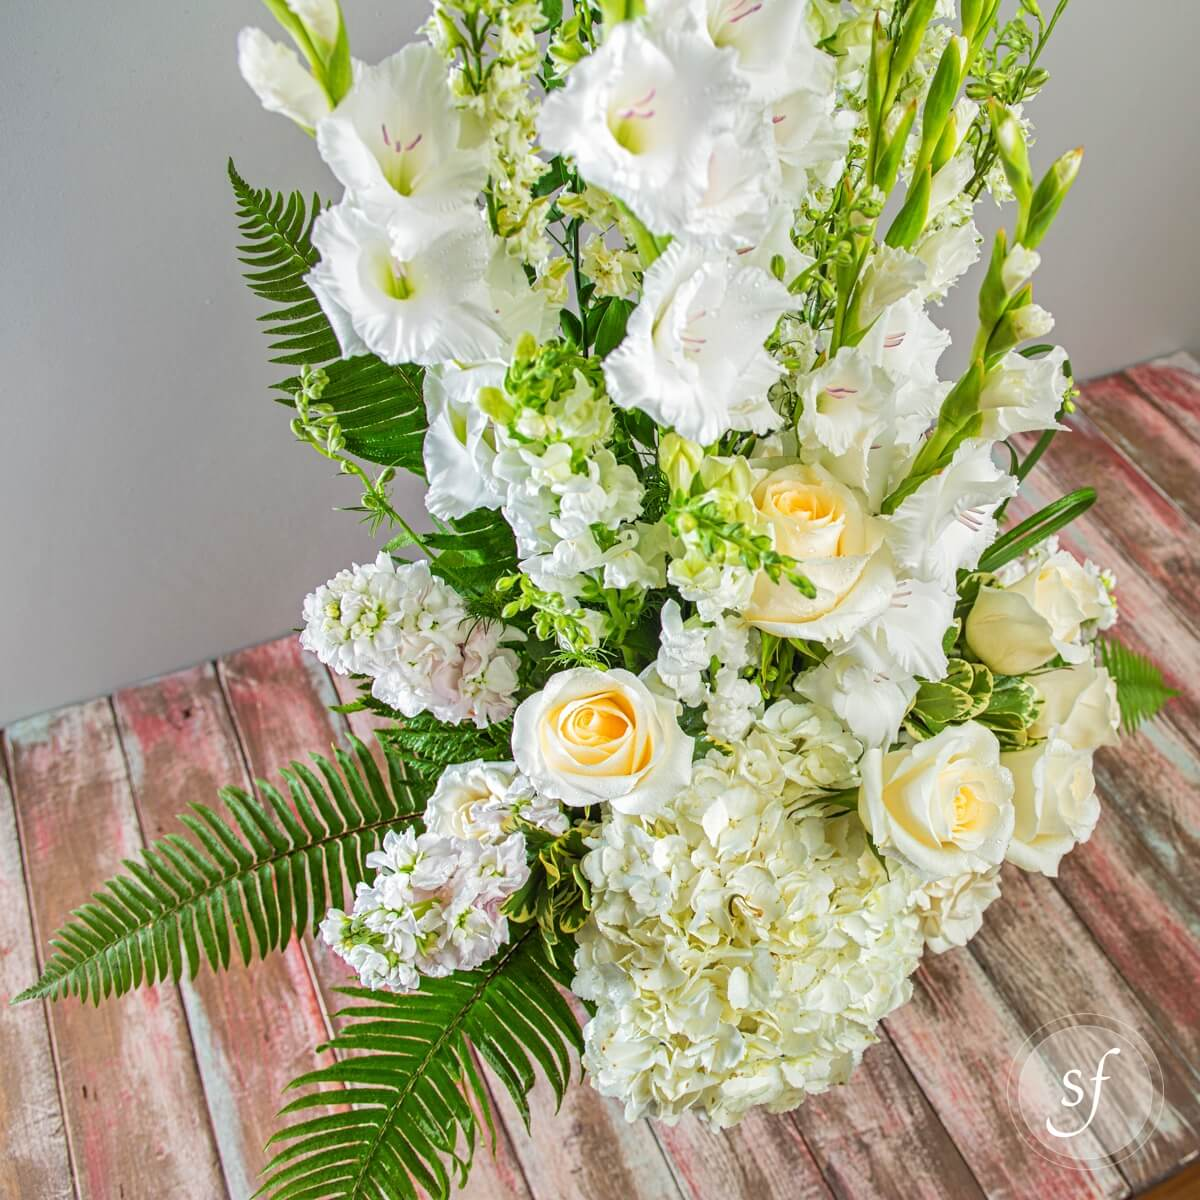 Express Sympathy With This Large And Elegant Funeral Arrangement Featuring White Gladioli Roses Hydrangea